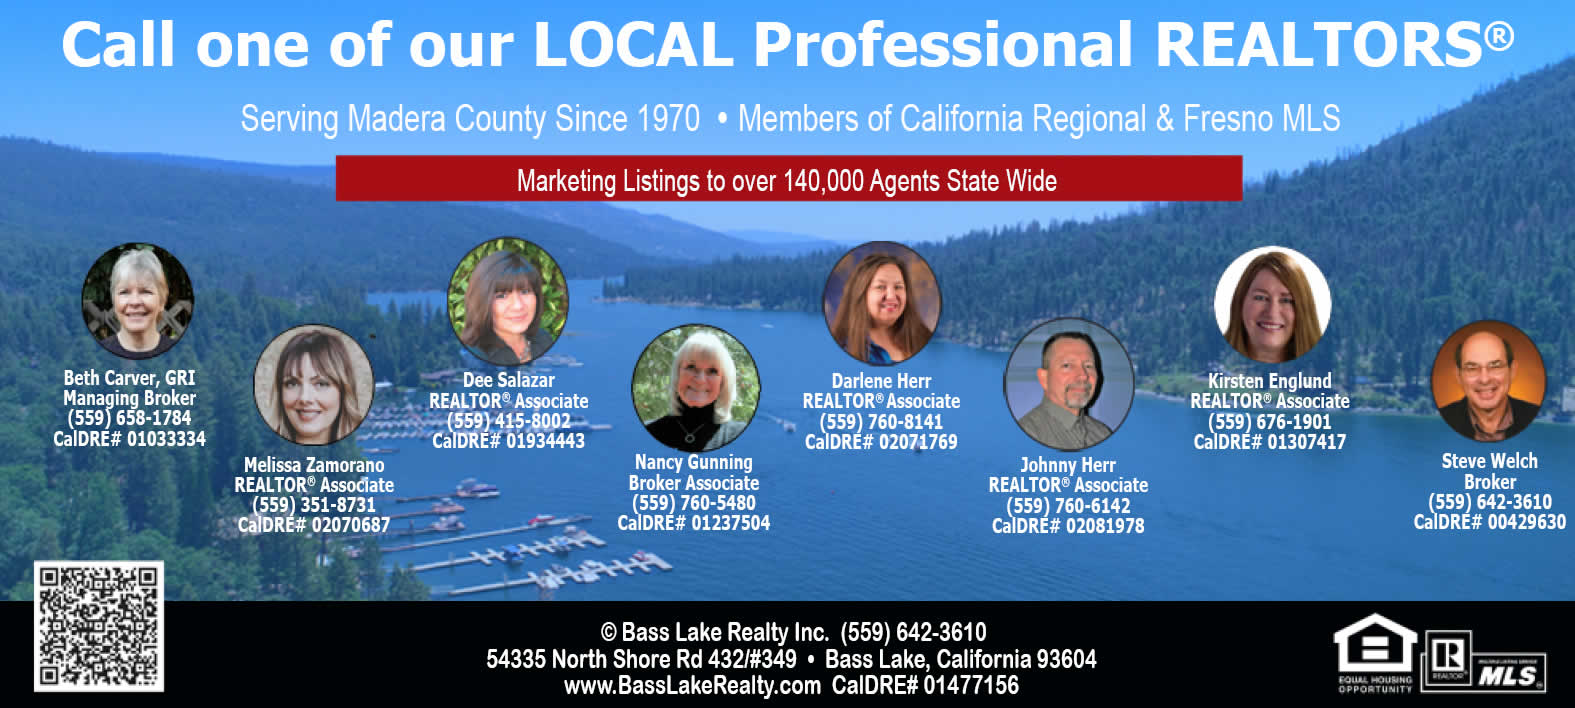 Bass Lake Realty Newsletter Footer JPG Image of Real Estate Team